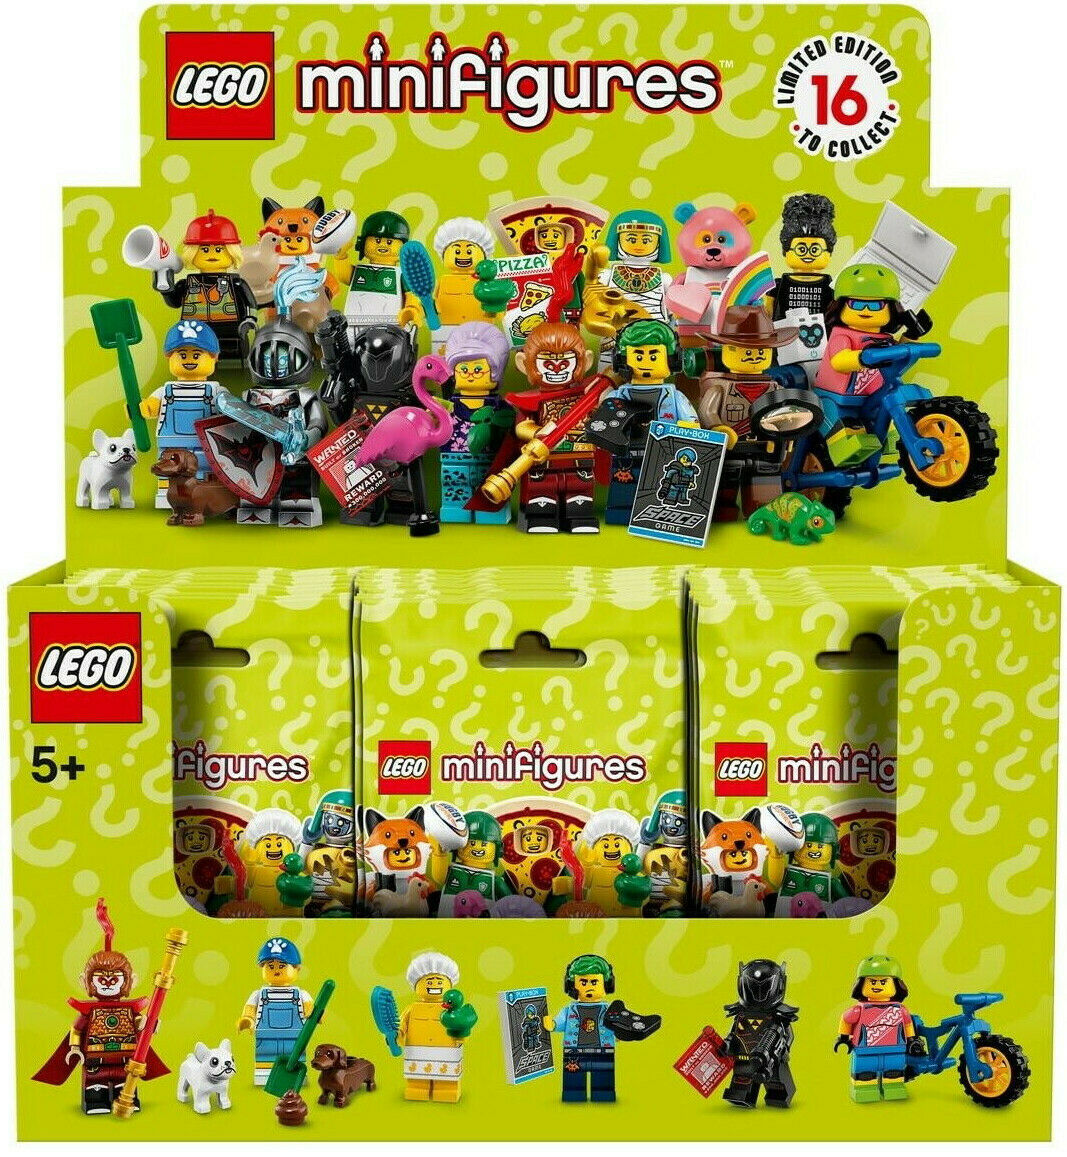 LEGO Minifigures Choose from 37